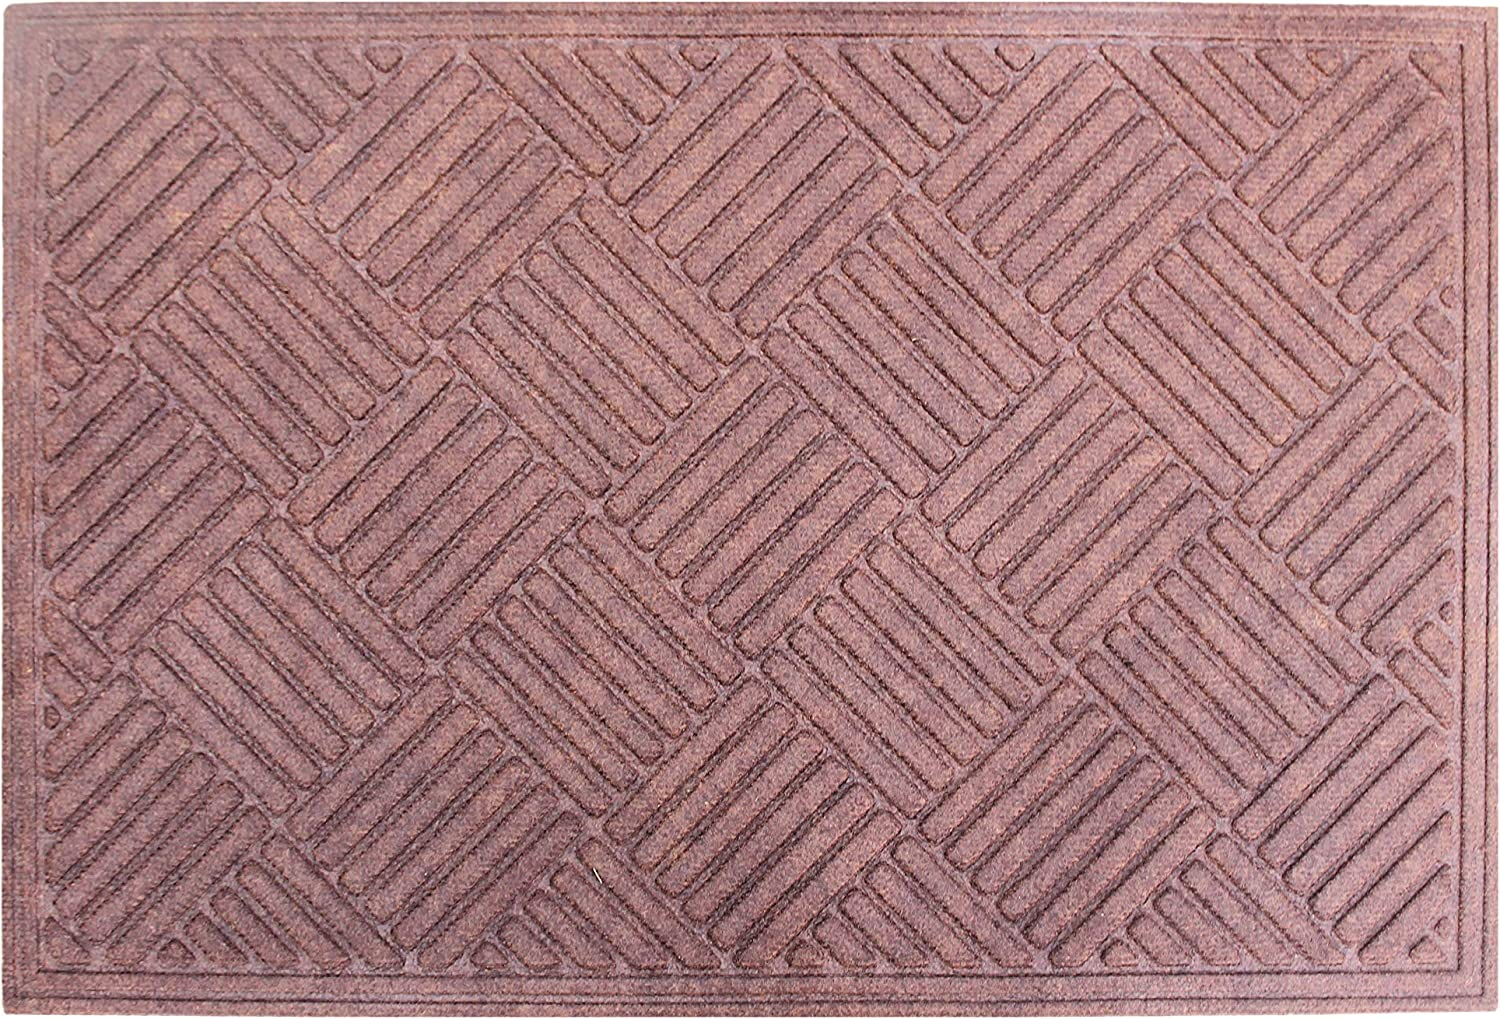 A1 Home Collections First Impression Parquet Eco-Poly Entrance Mats with Anti Slip Fabric Finish and Tire Crumb Backing, 24  W x 36  L, Dark Brown